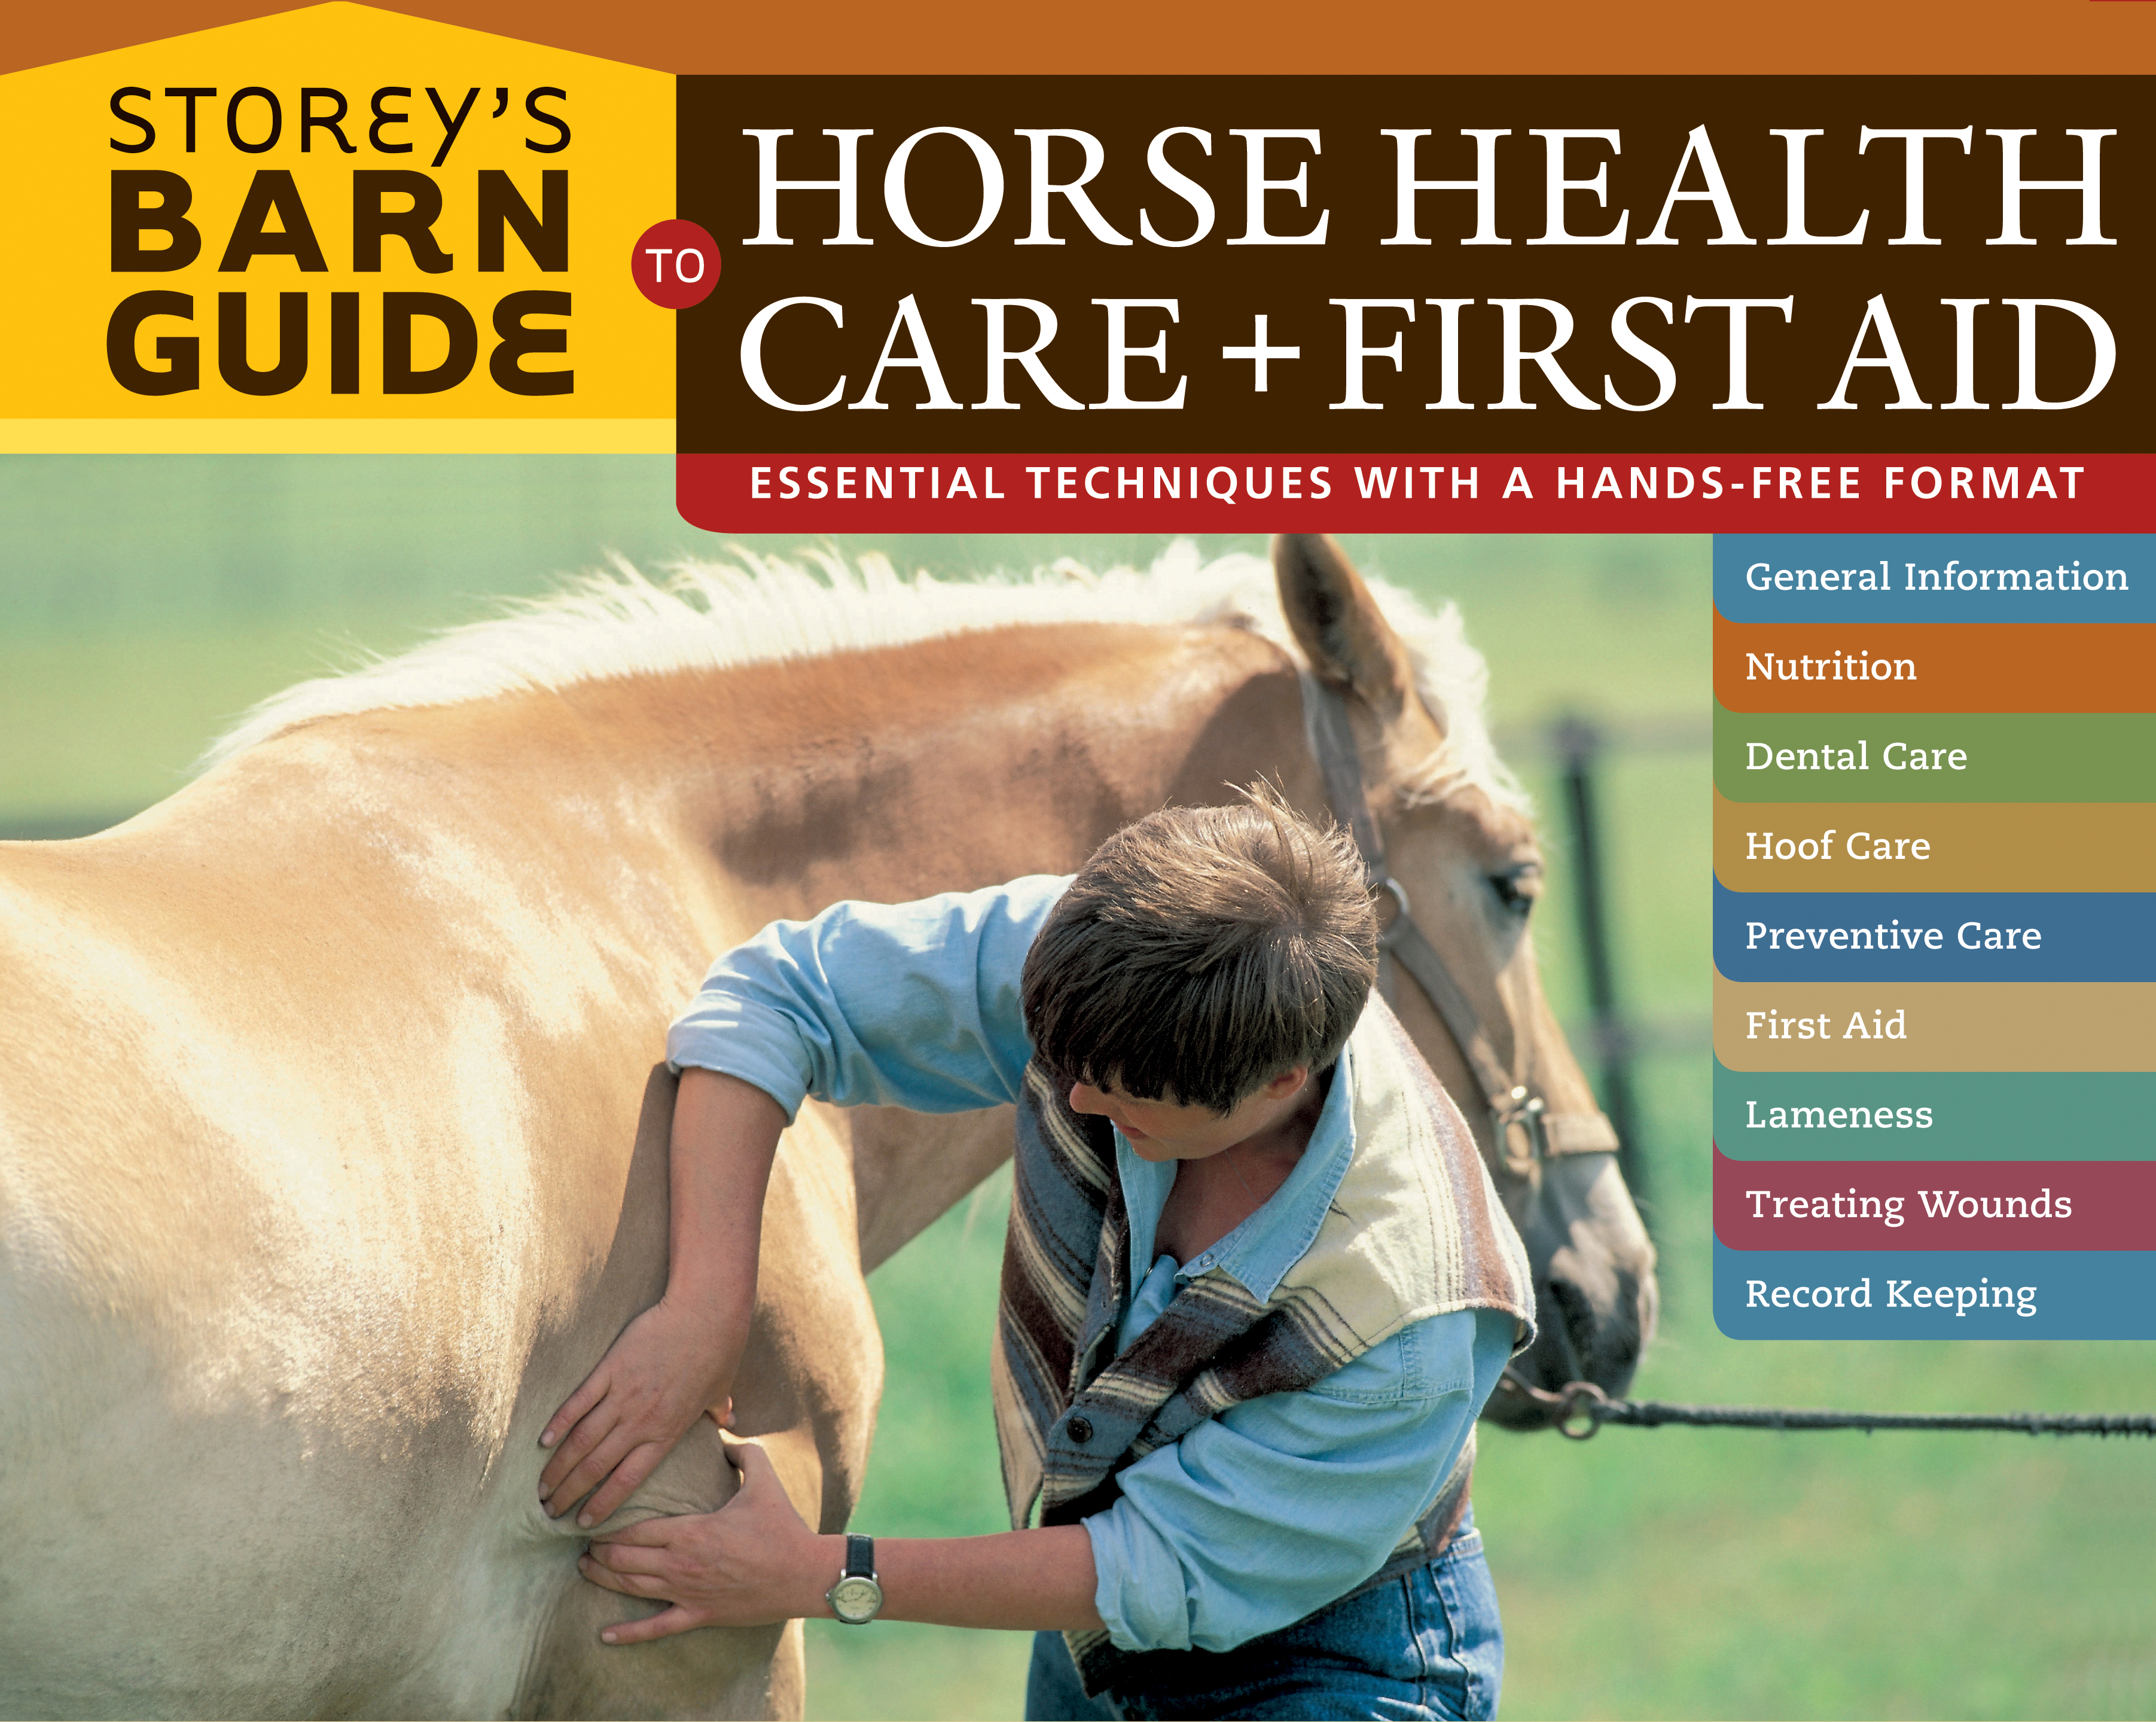 Storey's Barn Guide to Horse Health Care + First Aid  - Editors of Storey Publishing